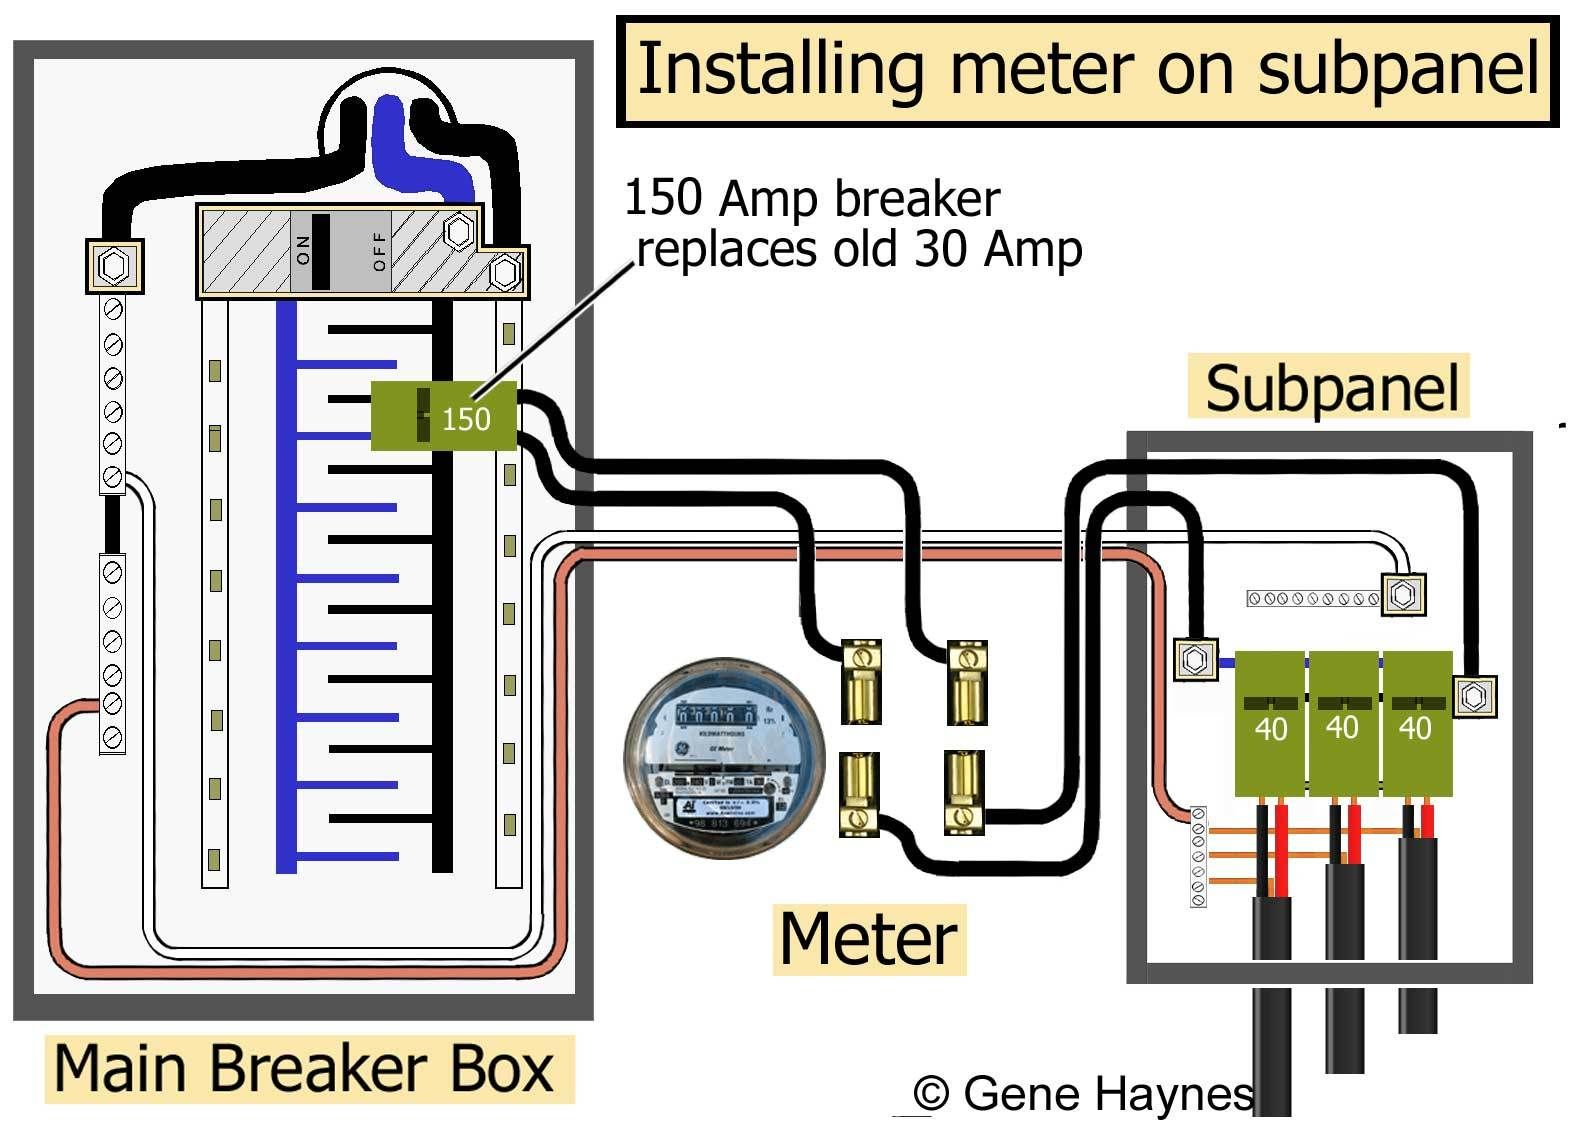 hight resolution of wiring diagram for meter box wiring diagram inside diagram of wiring meter box for homes on wiring from meter to breaker